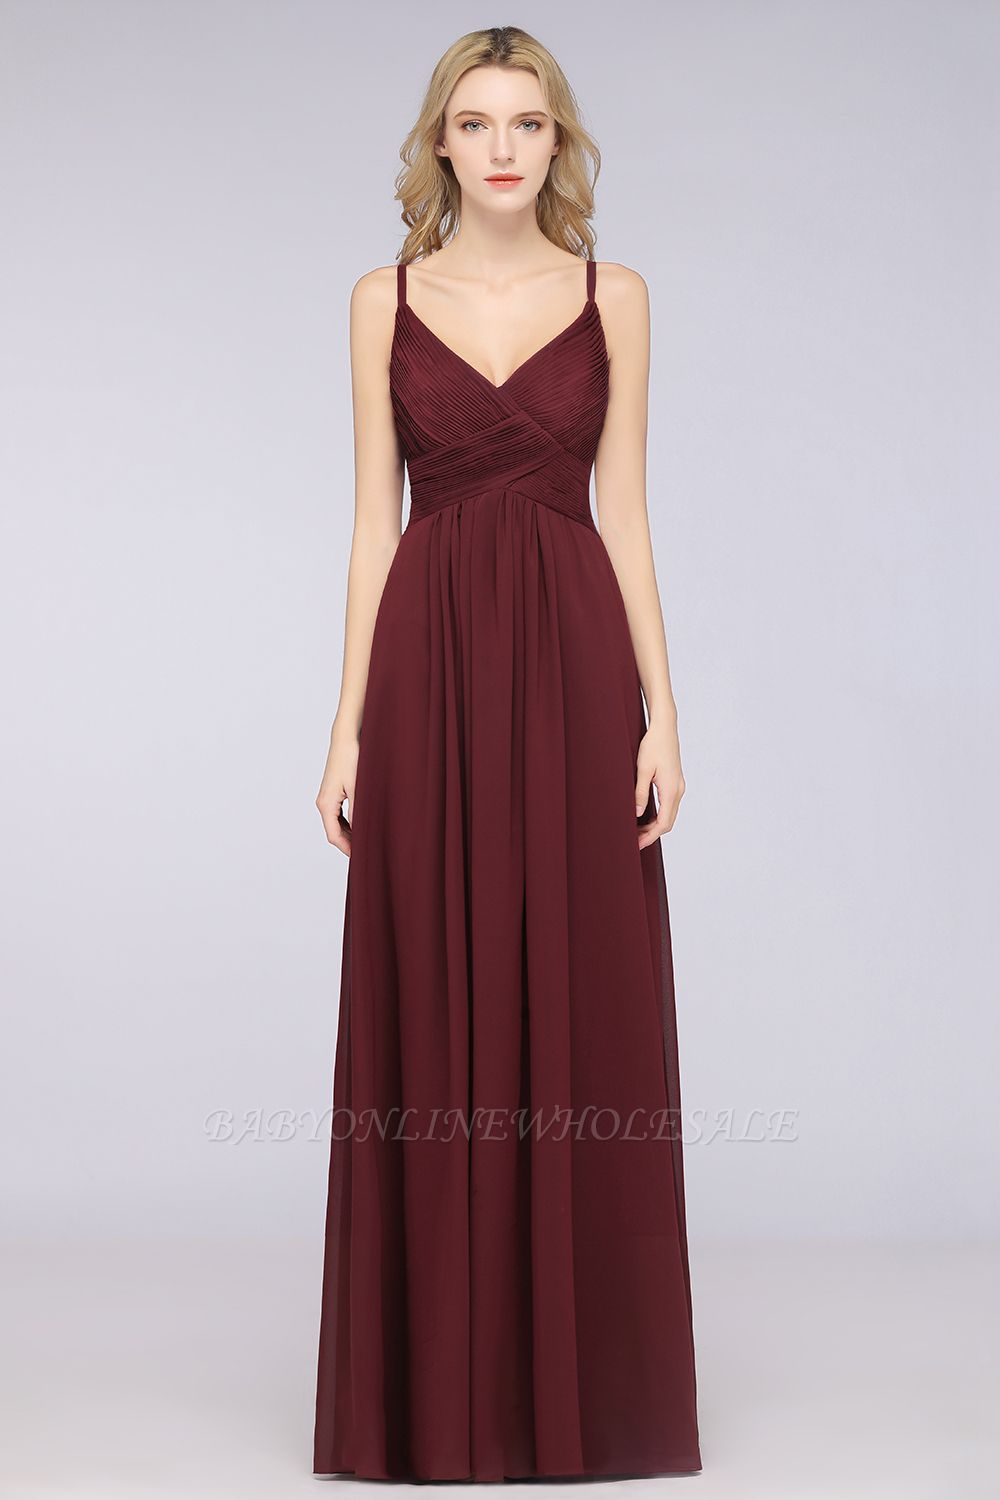 Chiffon A-Line Spaghetti-Straps V-Neck Sleeveless Long Bridesmaid Dress with Ruffles